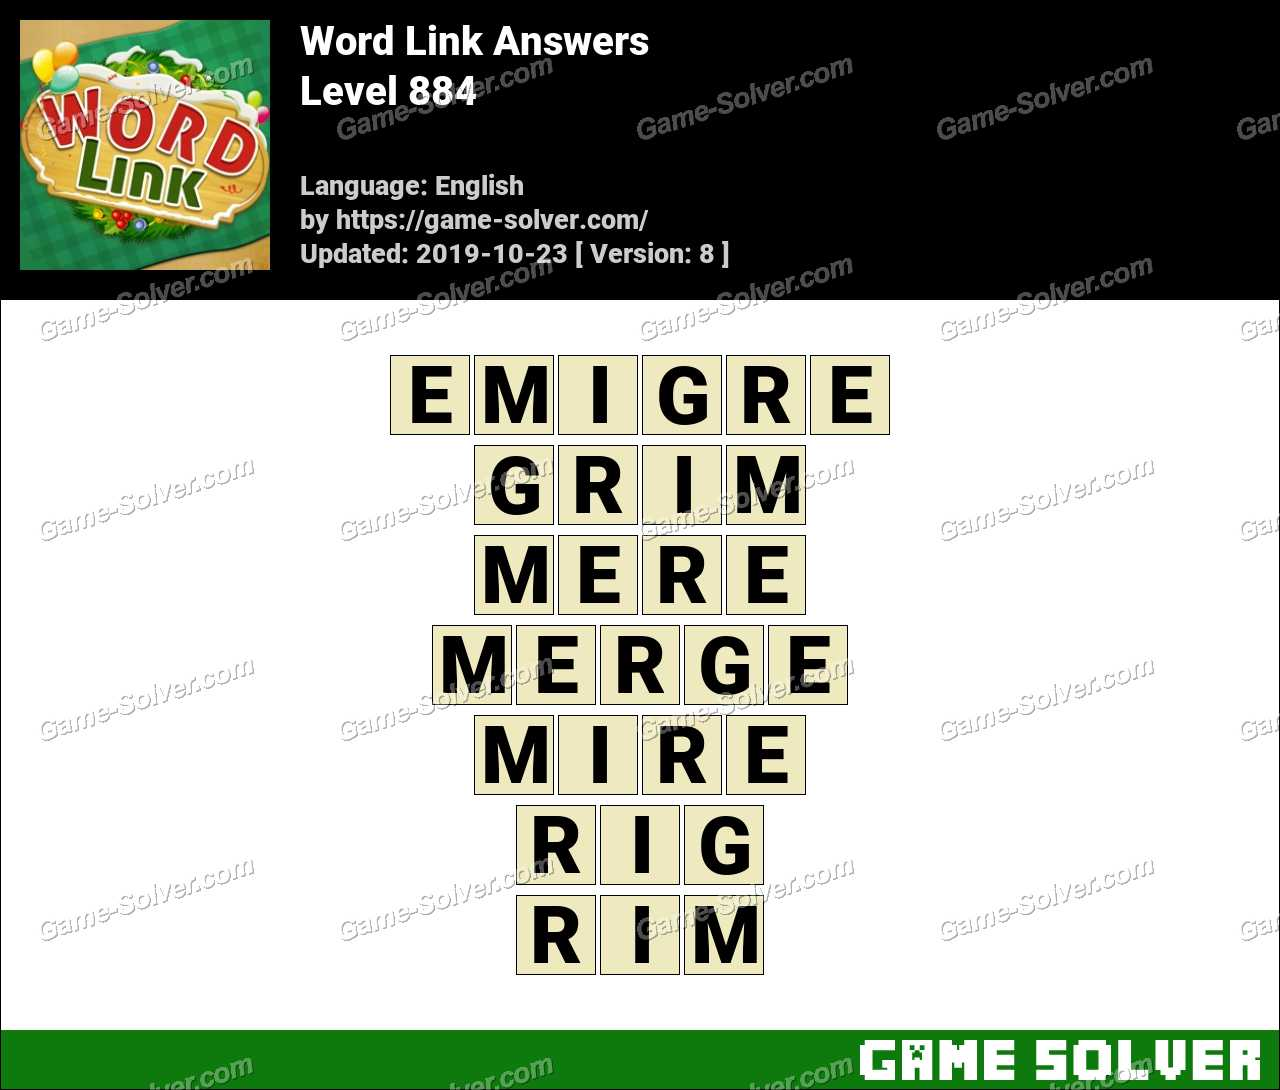 Word Link Level 884 Answers